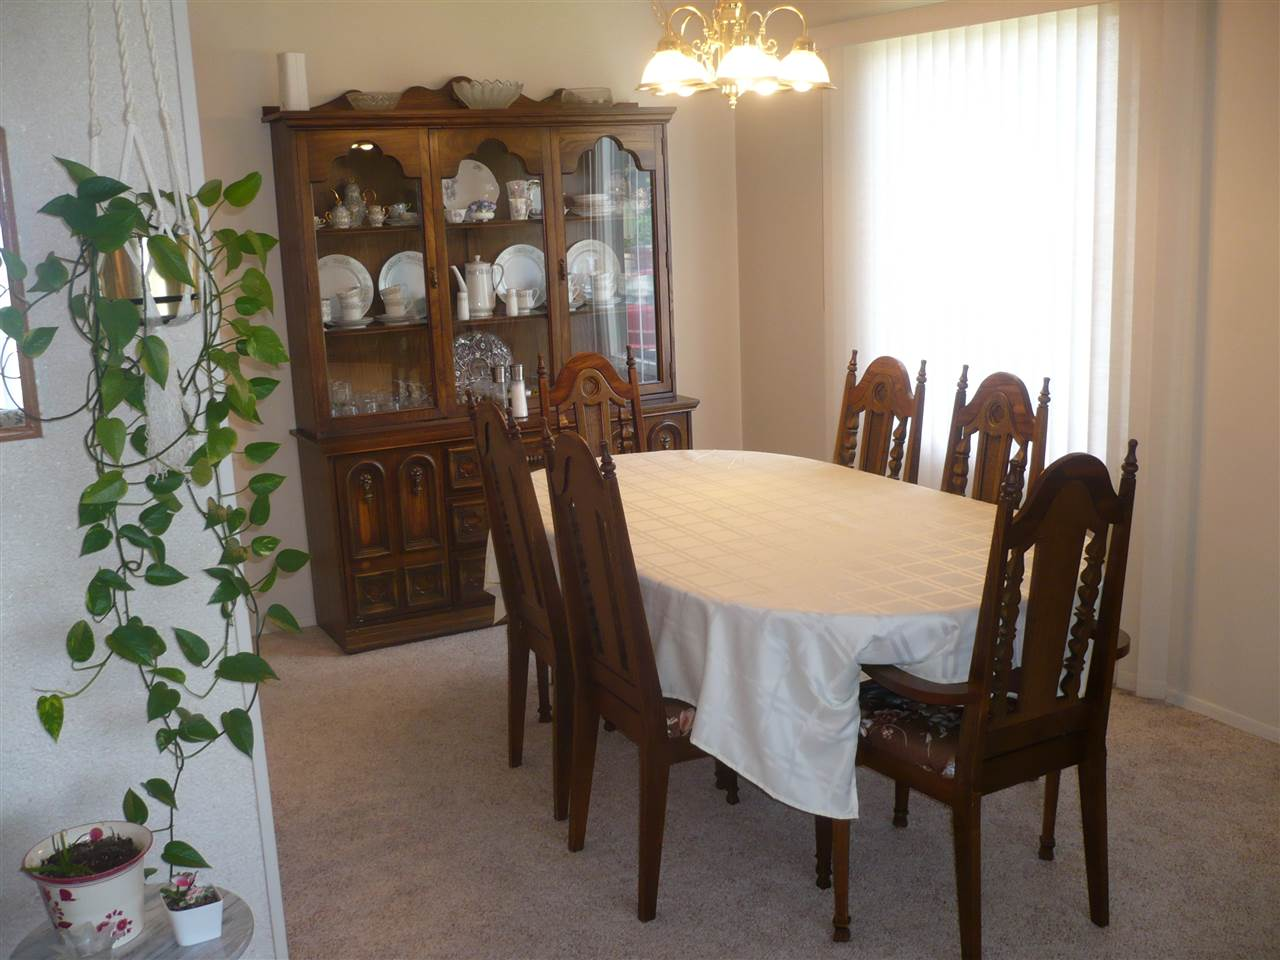 Shape of dinning room allows you to stretch out that dinning room table